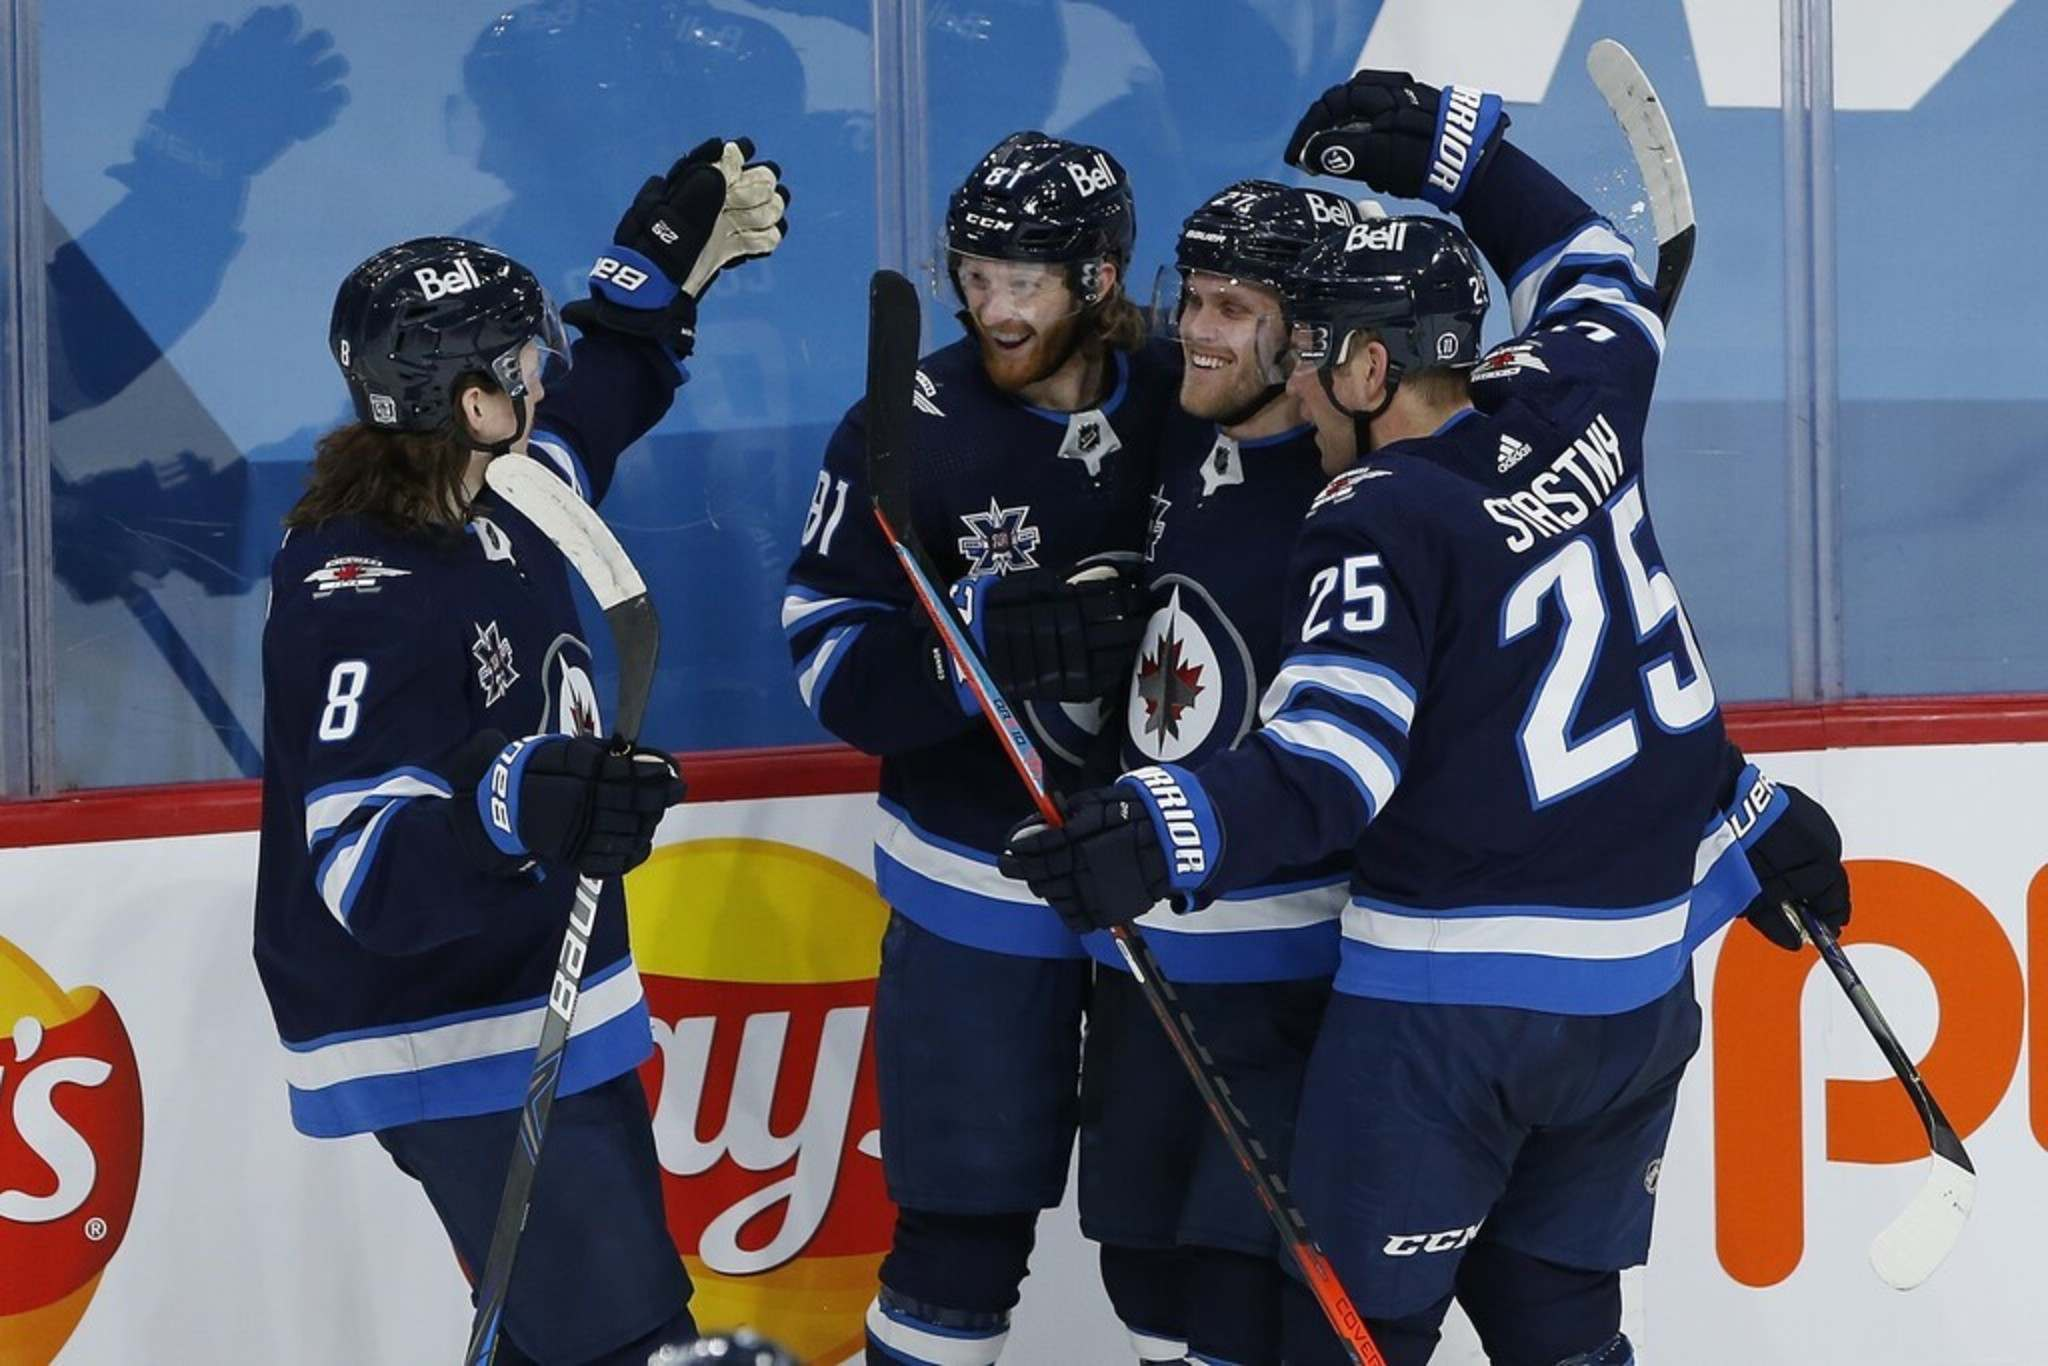 Winnipeg Jets' players celebrate Kyle Connor's goal against the Montreal Canadiens on February 25. Despite the second-best record in the NHL's North division at 14-7-1, the Jets' underlying numbers suggest tougher times await the club. THE CANADIAN PRESS/John Woods</p>